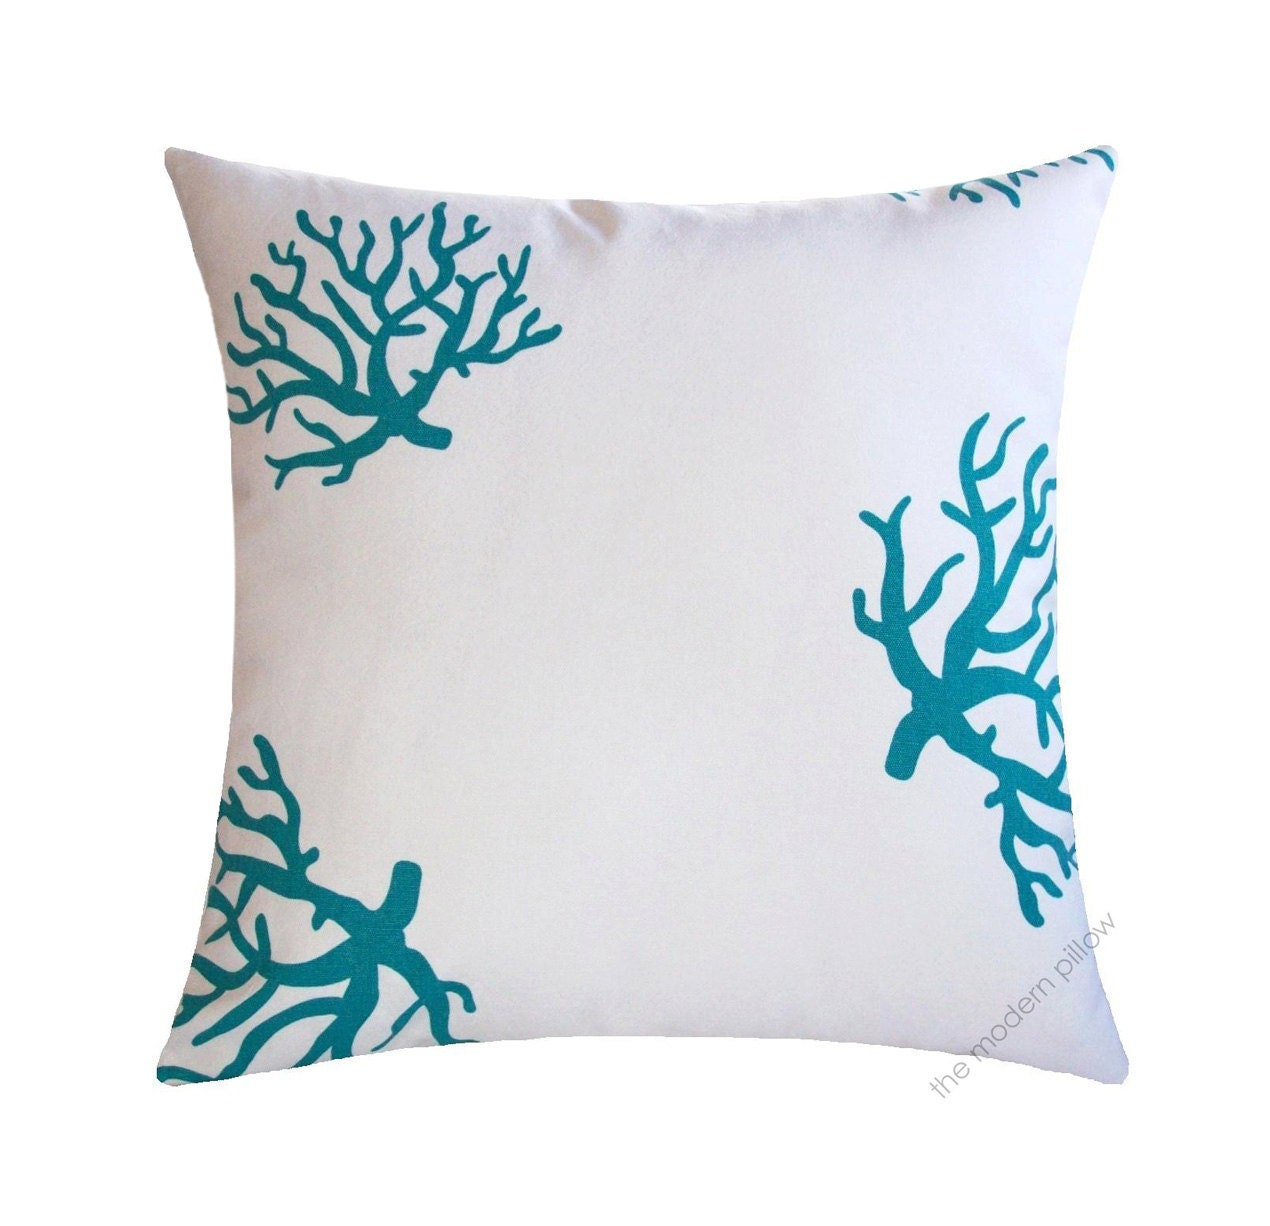 White / Turquoise Blue Coral Decorative Throw Pillow Cover